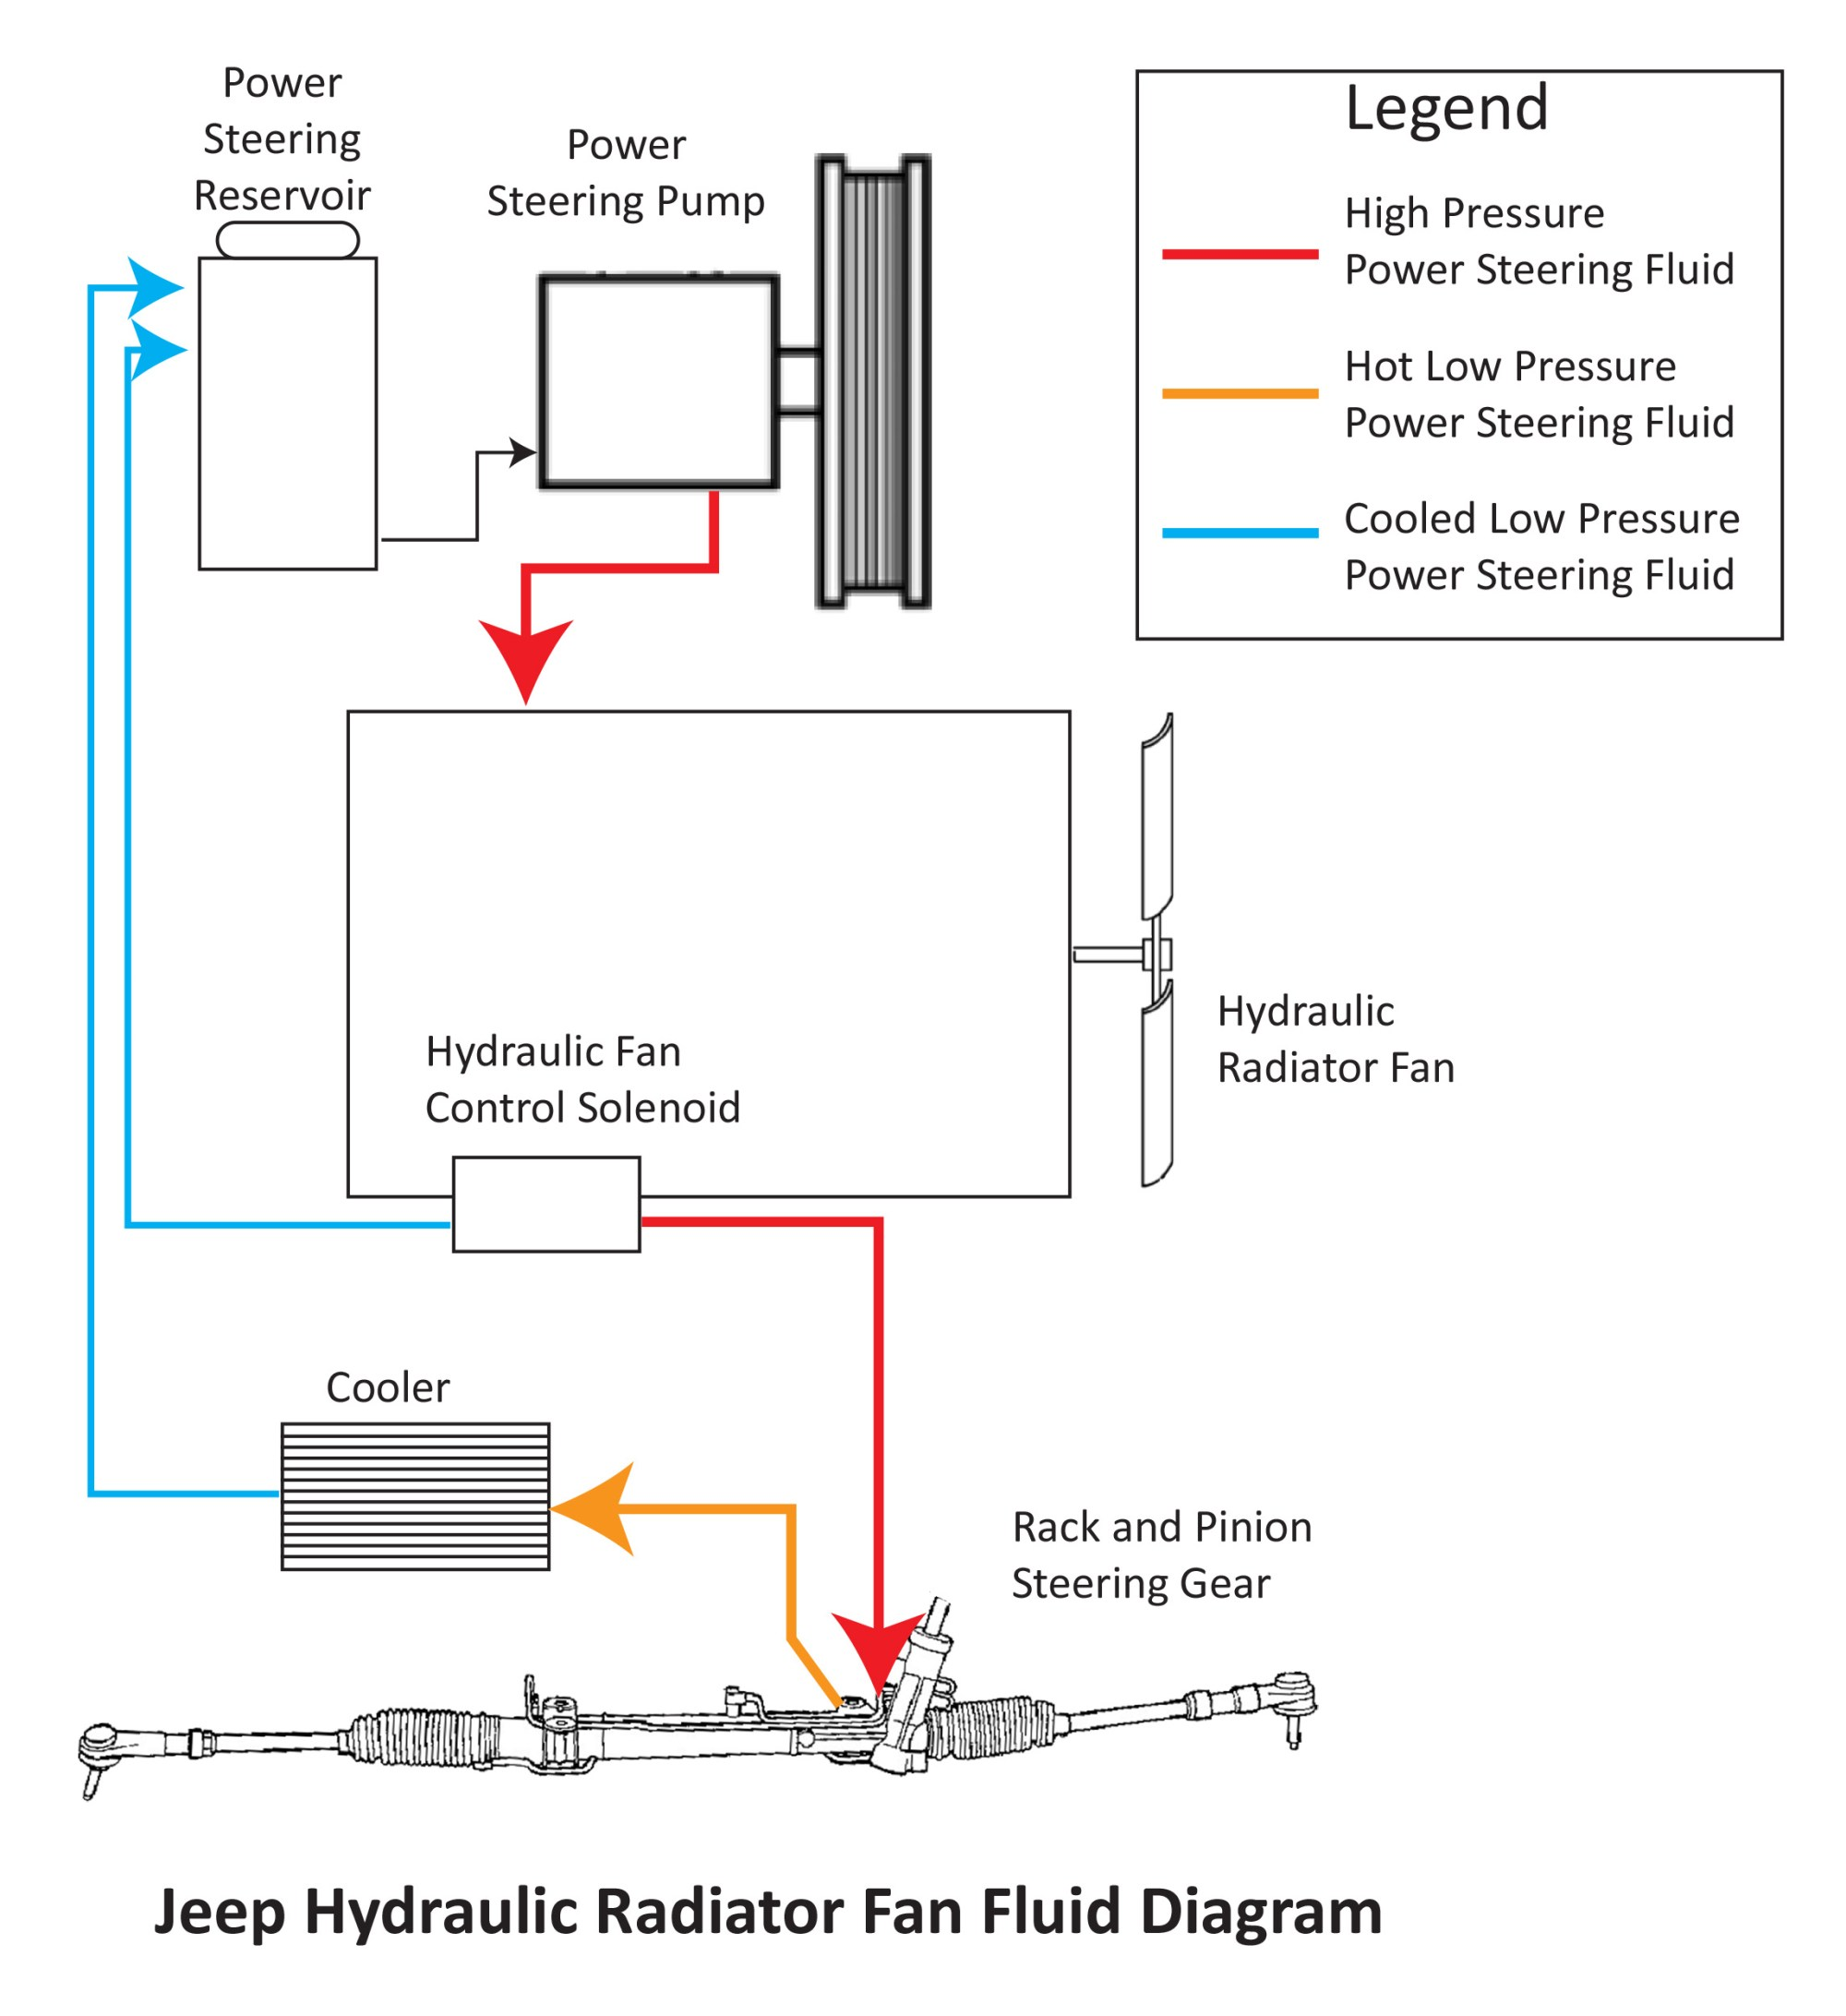 hight resolution of jeep diesel hydraulic radiator fan issues